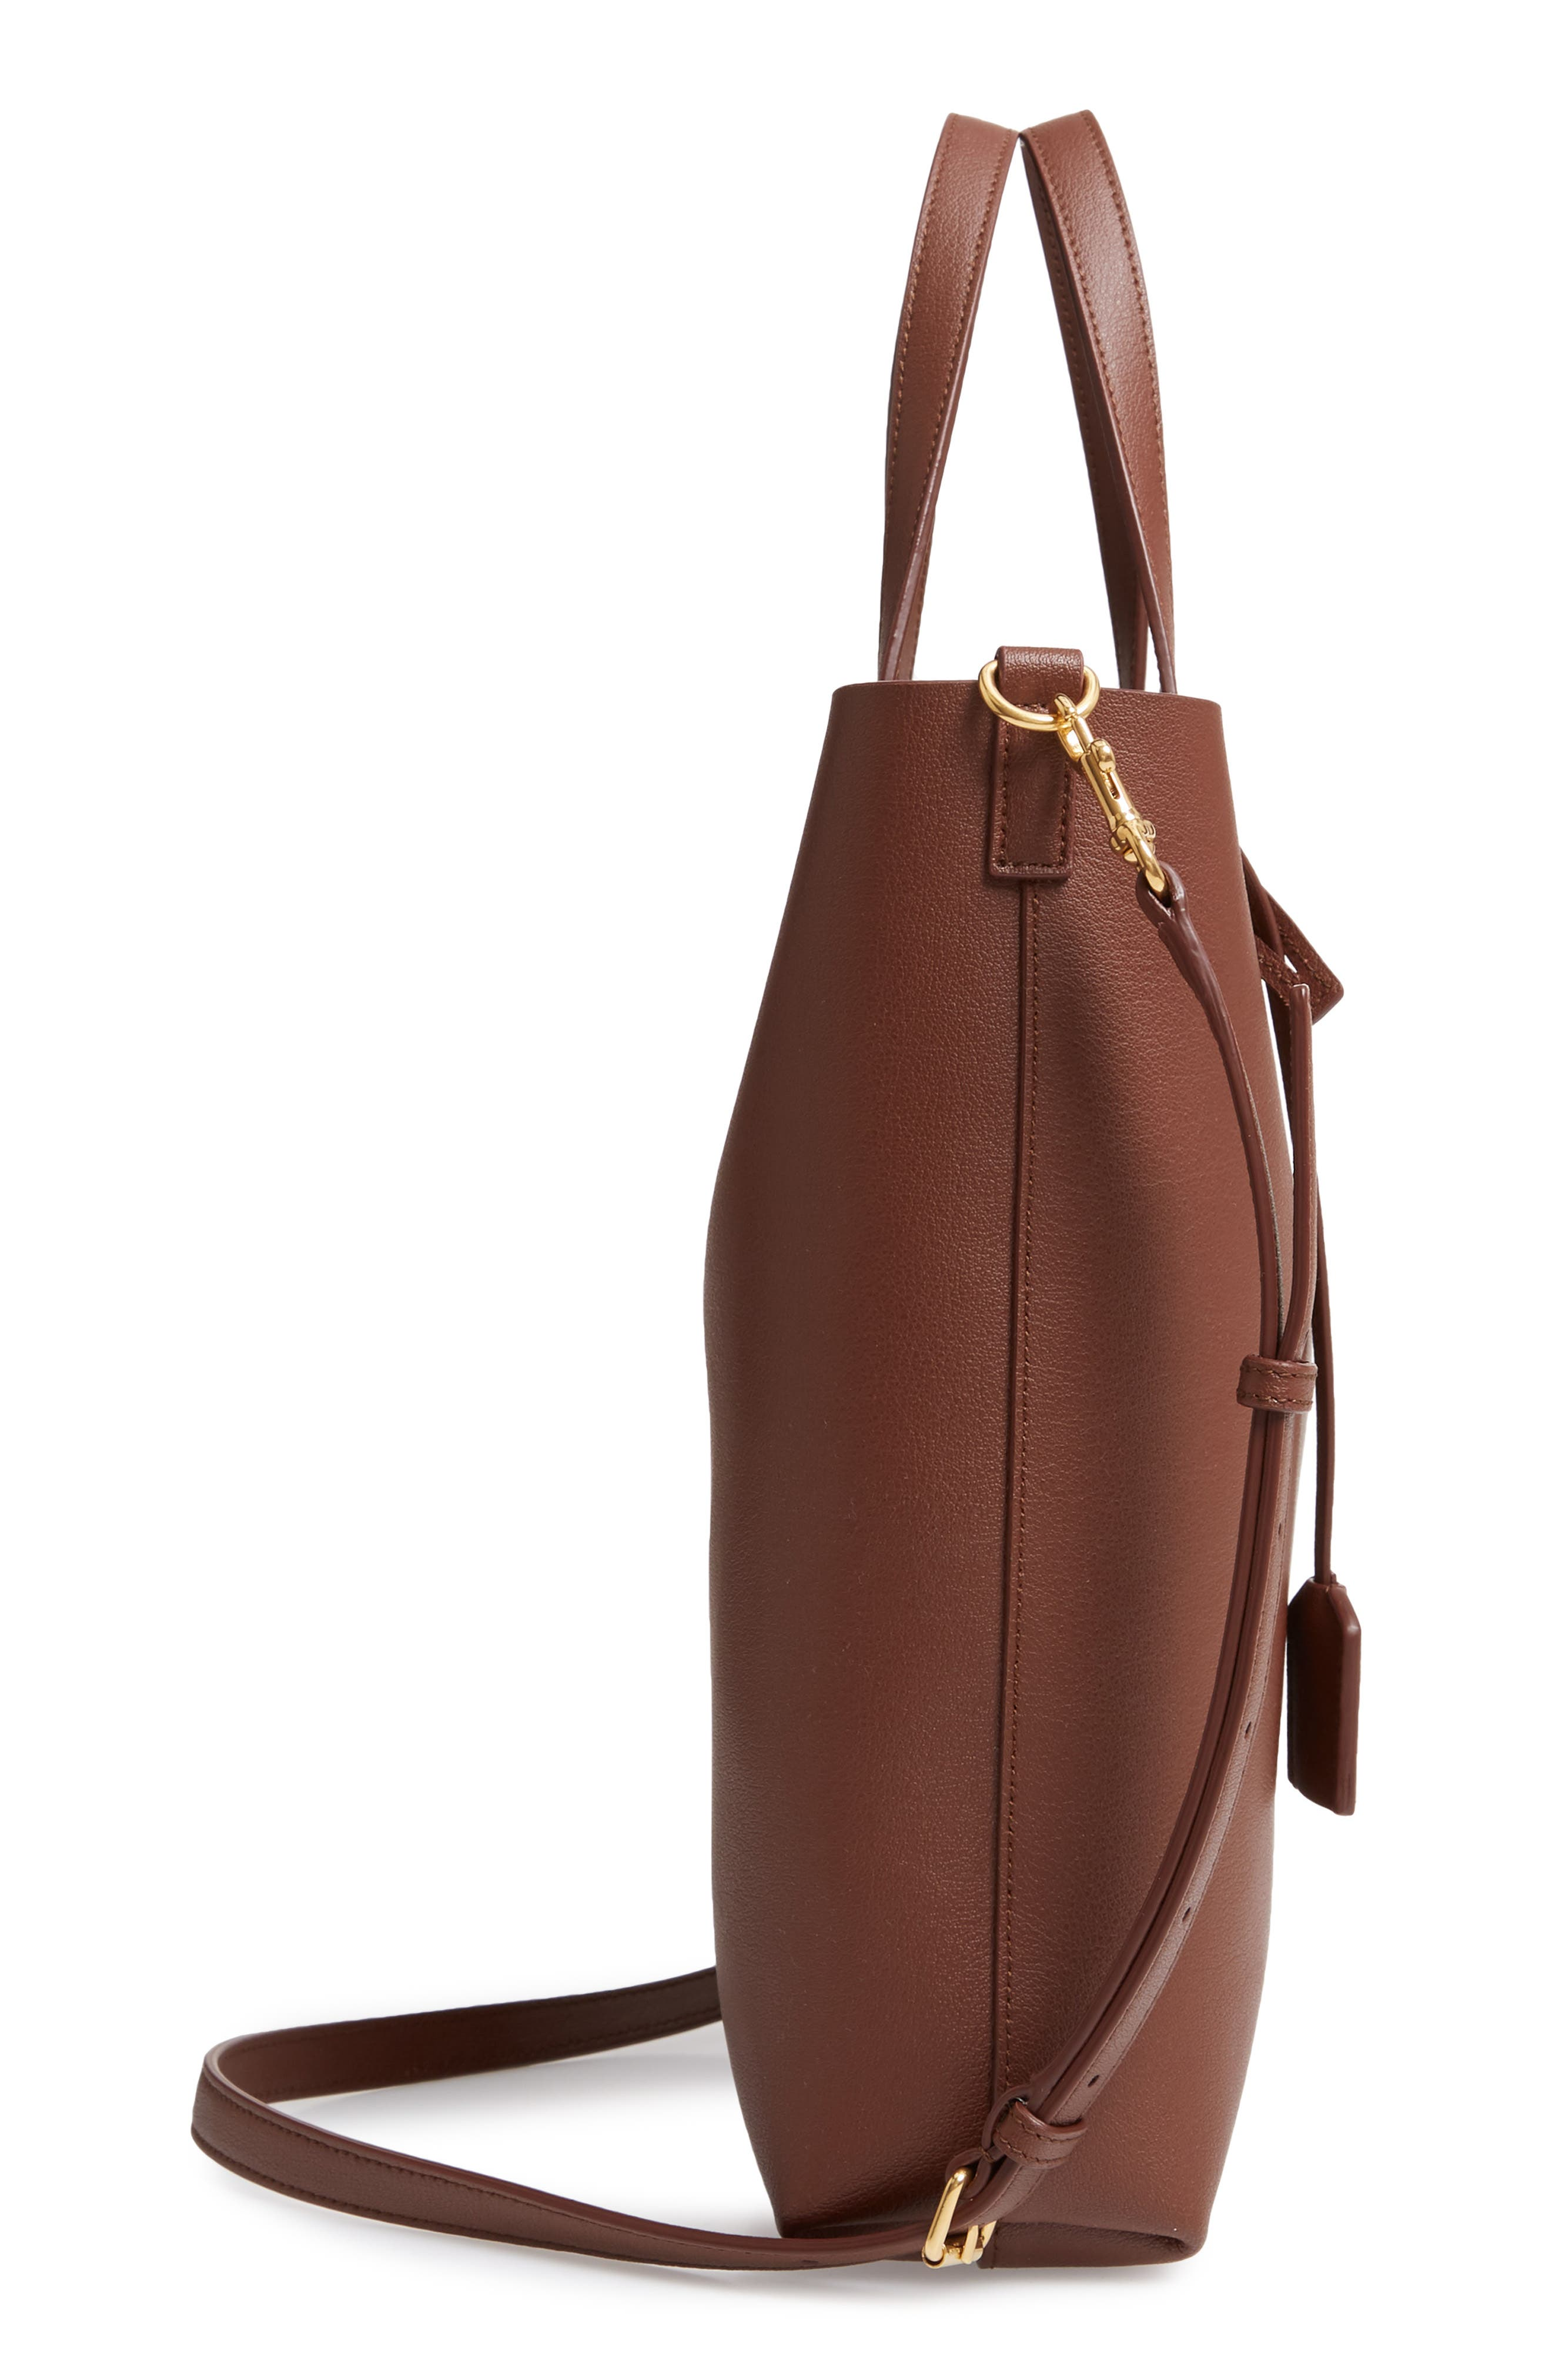 SAINT LAURENT, Toy Shopping Leather Tote, Alternate thumbnail 5, color, BRANDY OLD